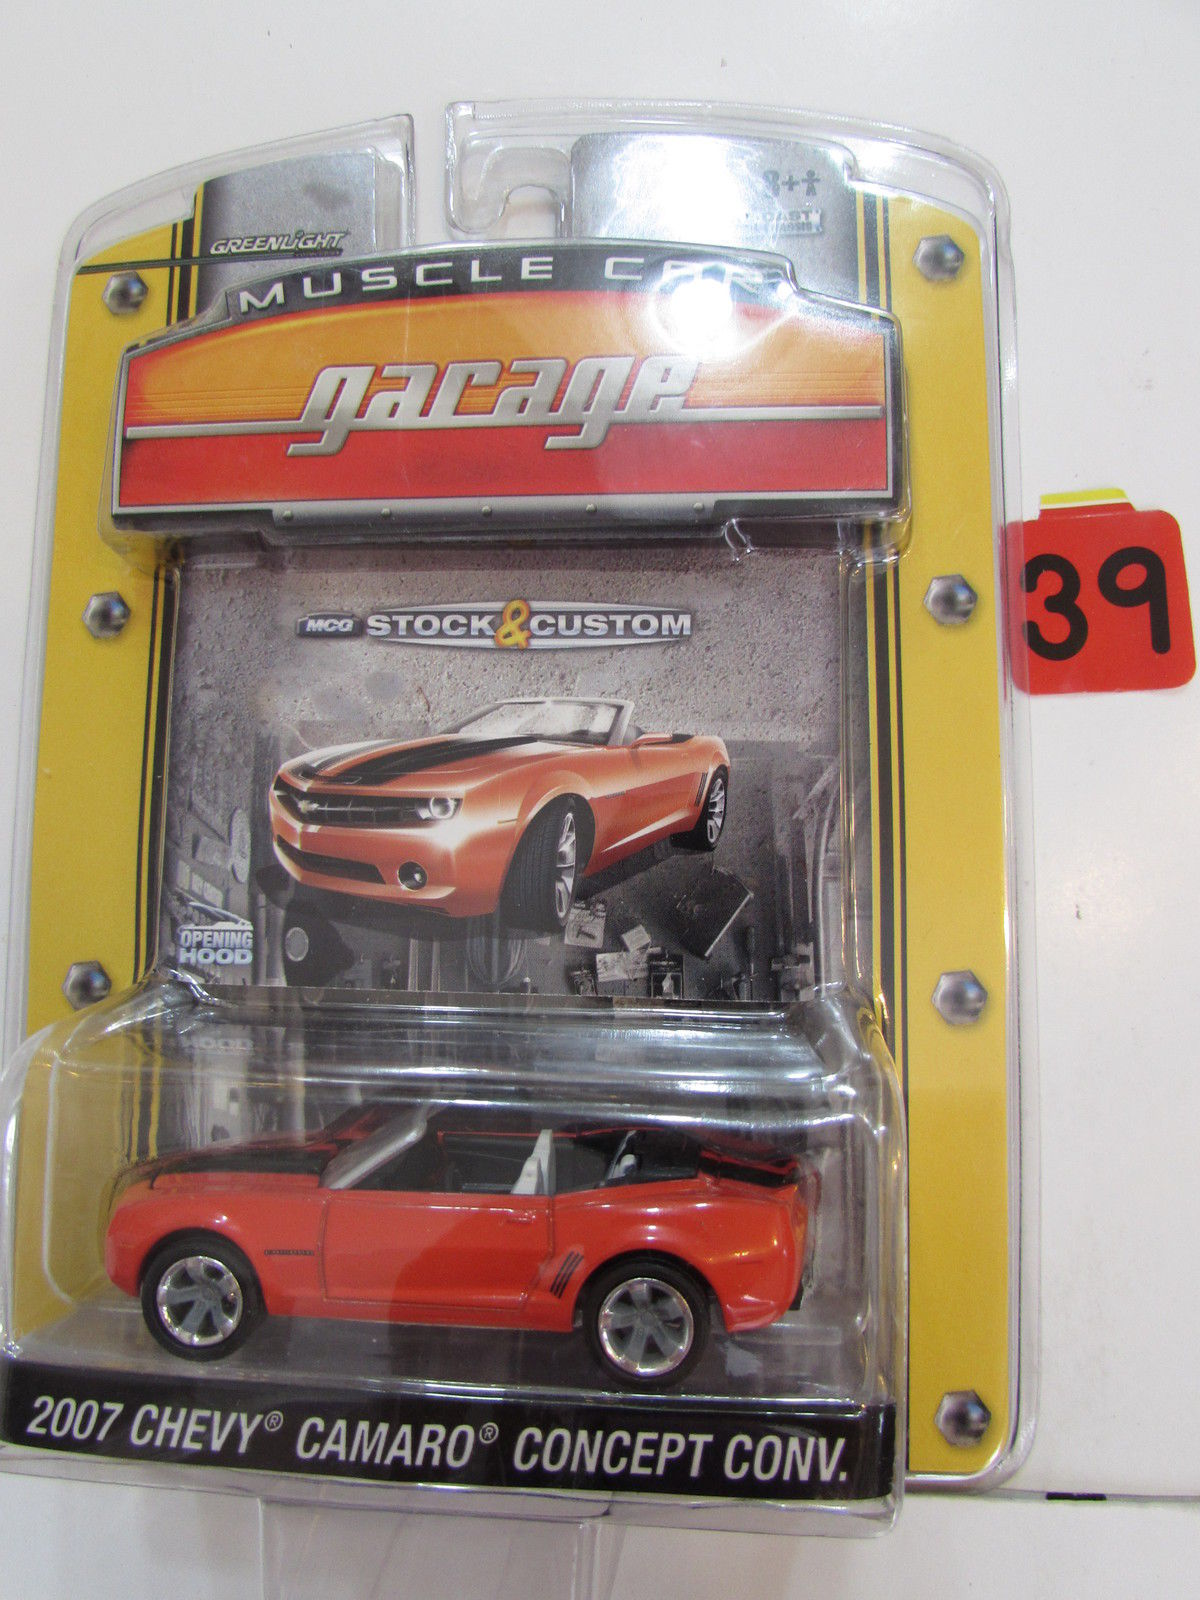 GREENLIGHT MUSCLE CAR GARAGE 2007 CHEVY CAMARO CONCEPT CONV RED SCALE 1:64